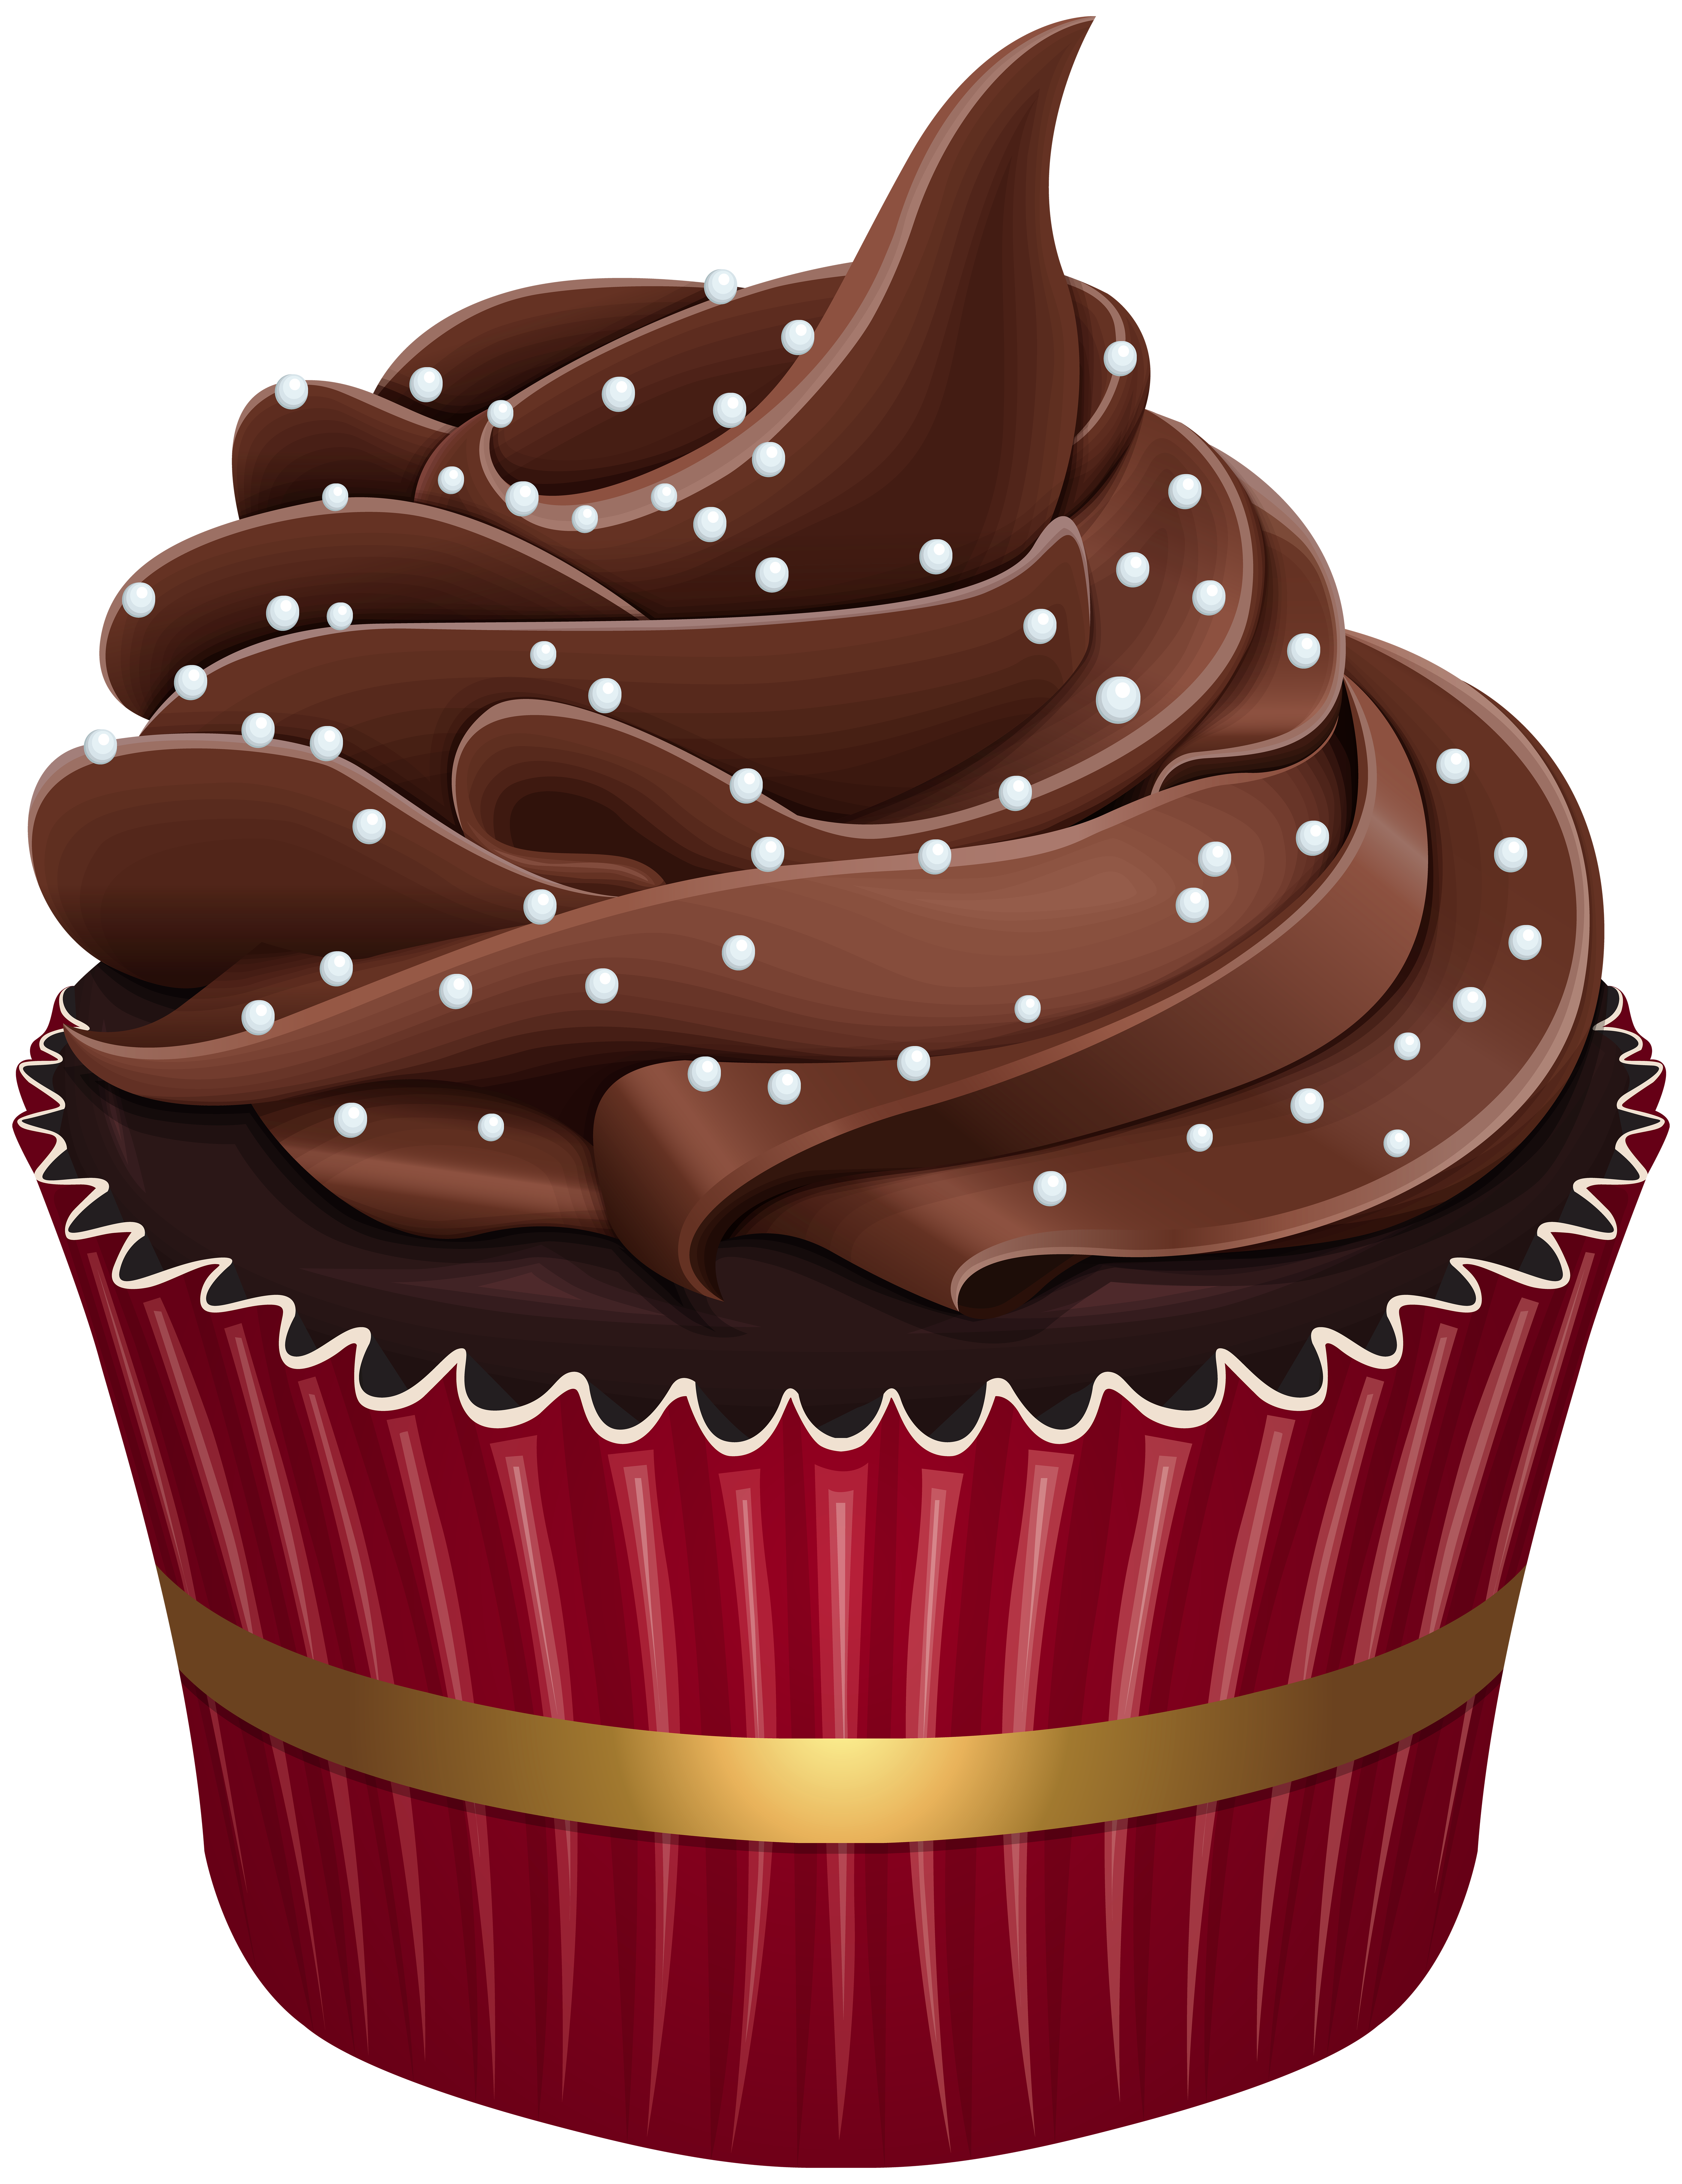 Png cupcake. Clip art gallery yopriceville